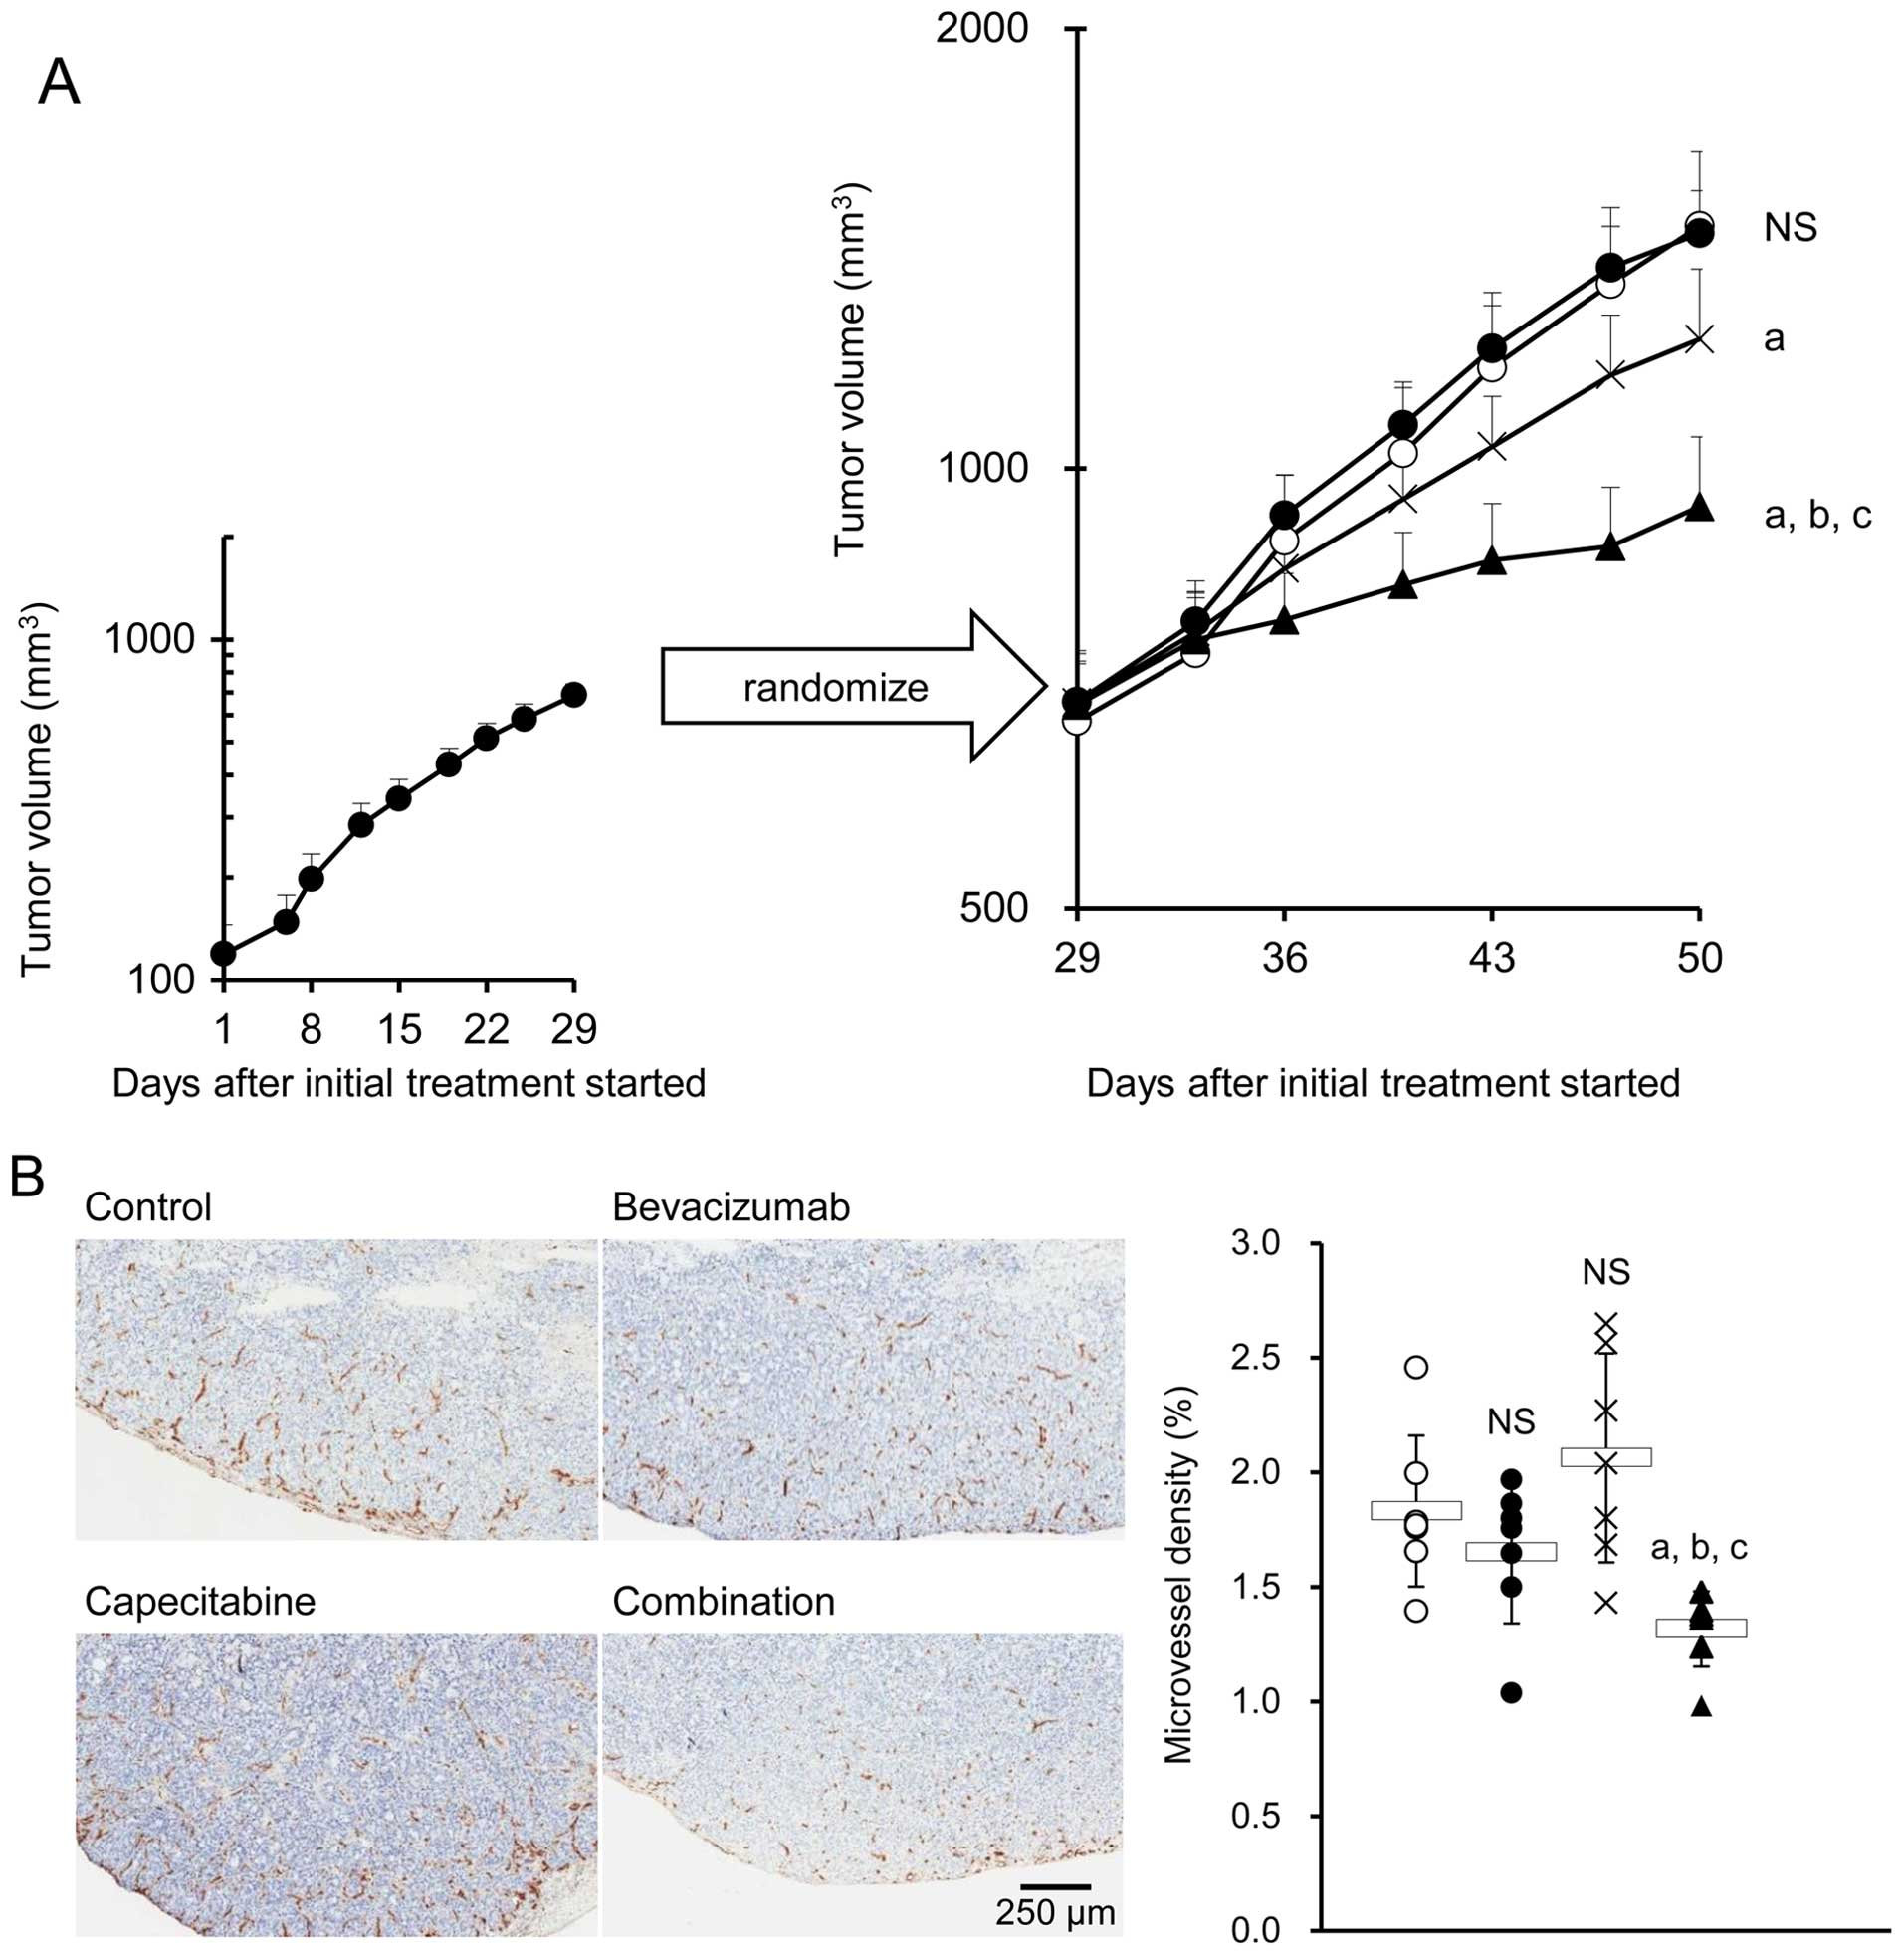 Continuous Administration Of Bevacizumab Plus Capecitabine Even After Acquired Resistance To Bevacizumab Restored Anti Angiogenic And Antitumor Effect In A Human Colorectal Cancer Xenograft Model